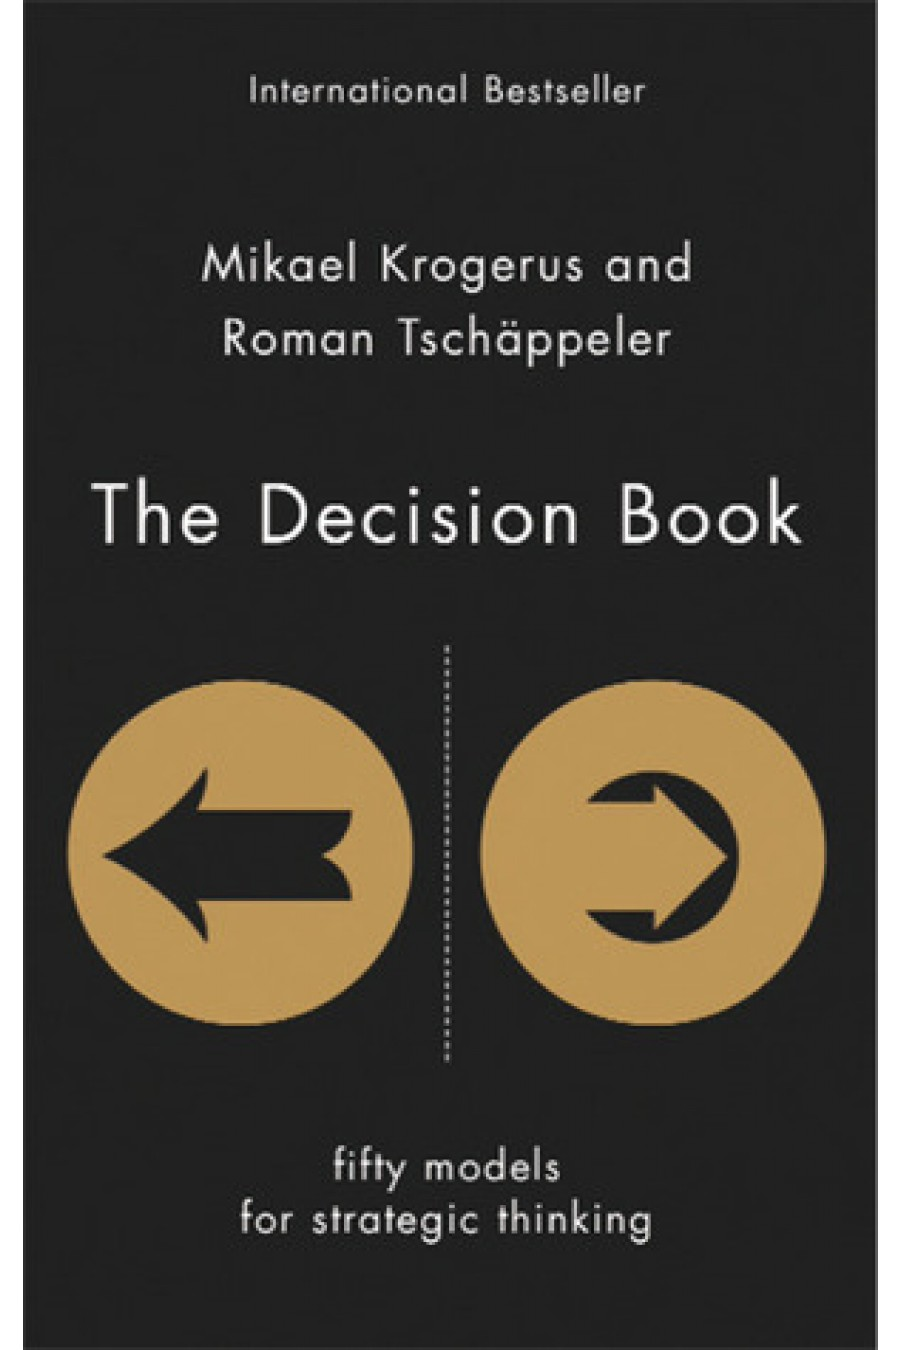 TheDecisionBook.jpg